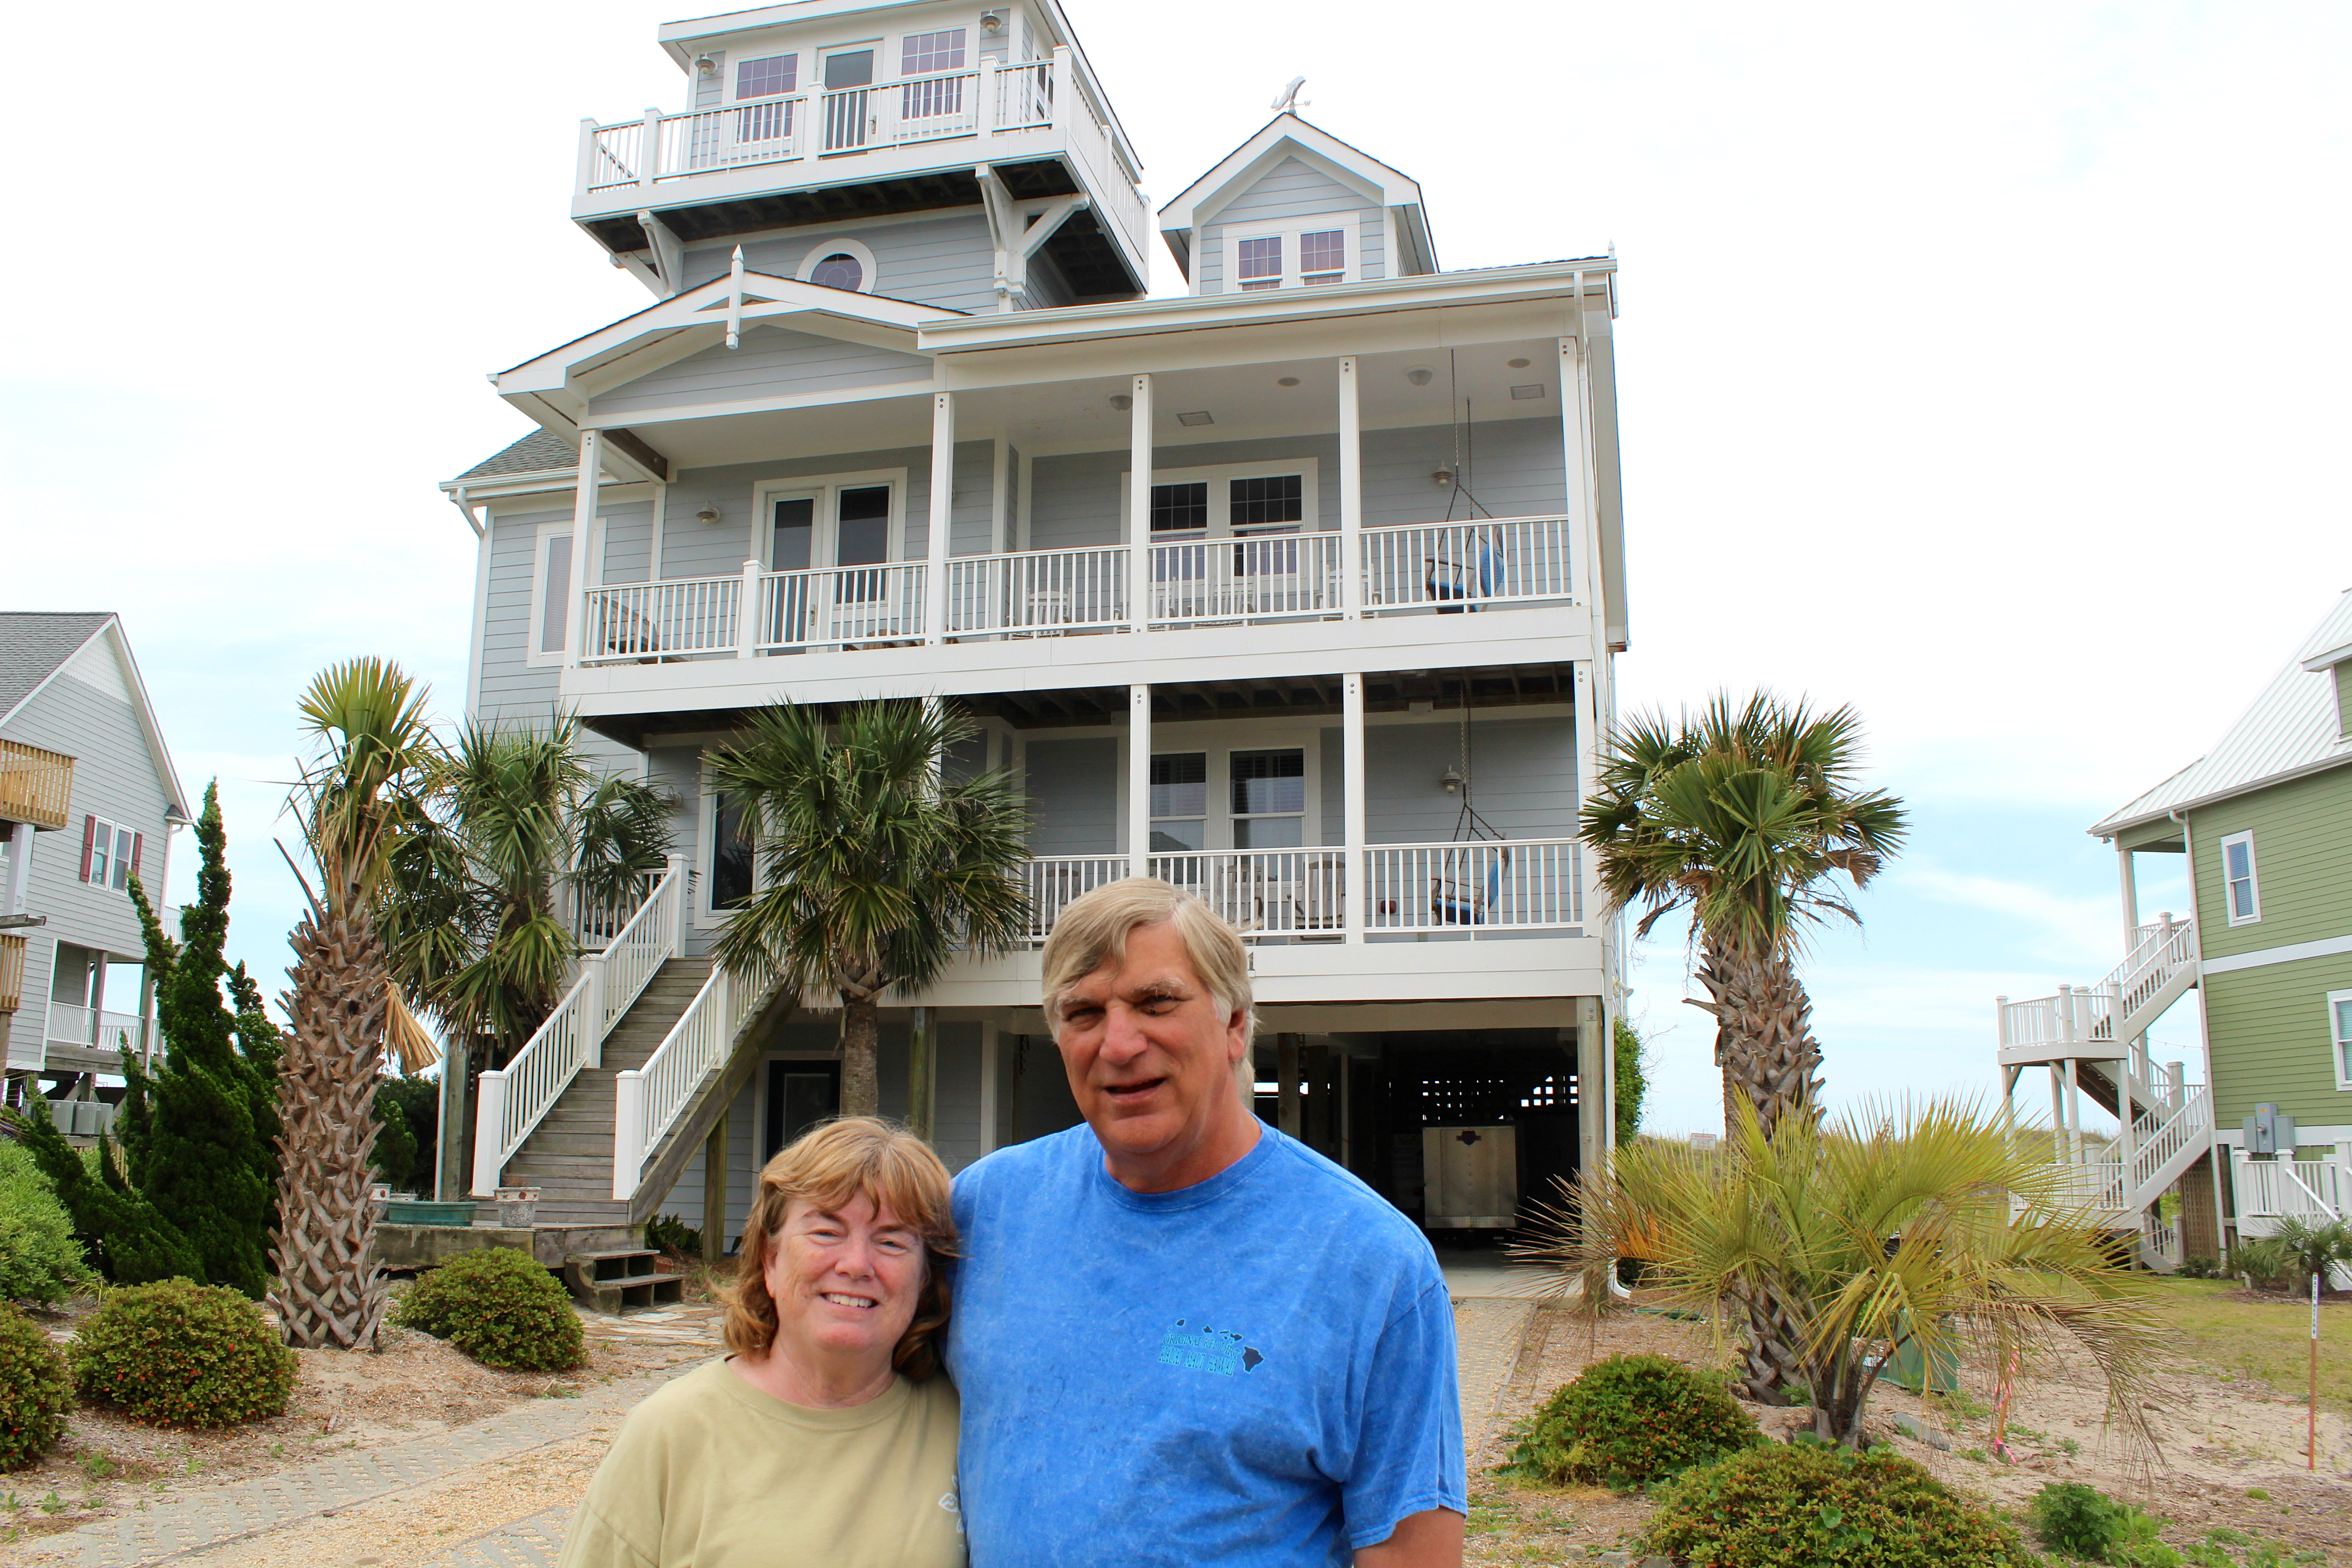 Frustrated homeowners say Expedia's HomeAway changes